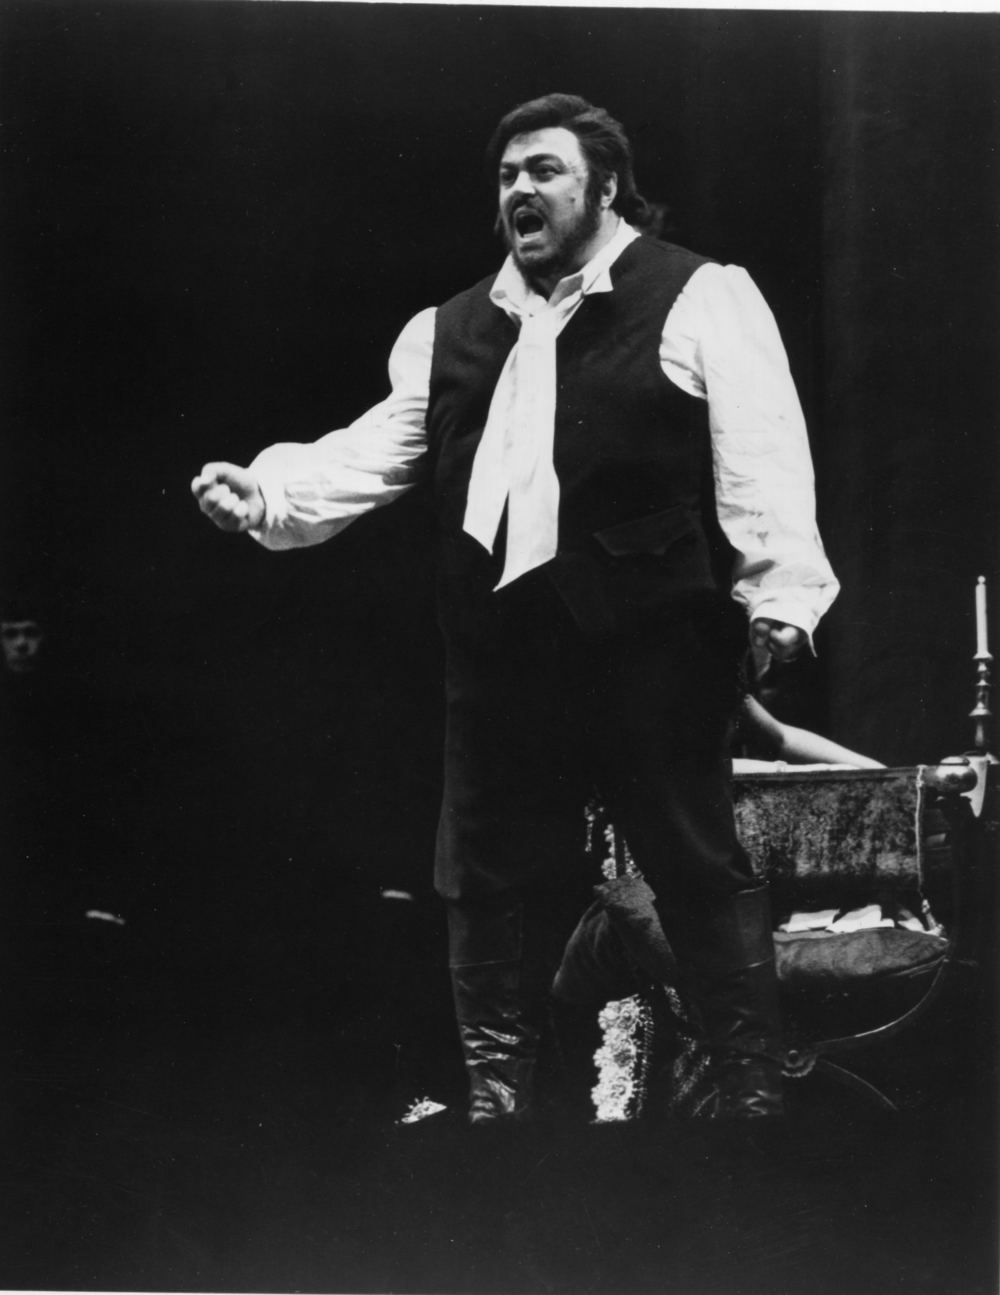 Pavarotti in Tosca (Photo Credit: The Metropolitan Opera Archives)